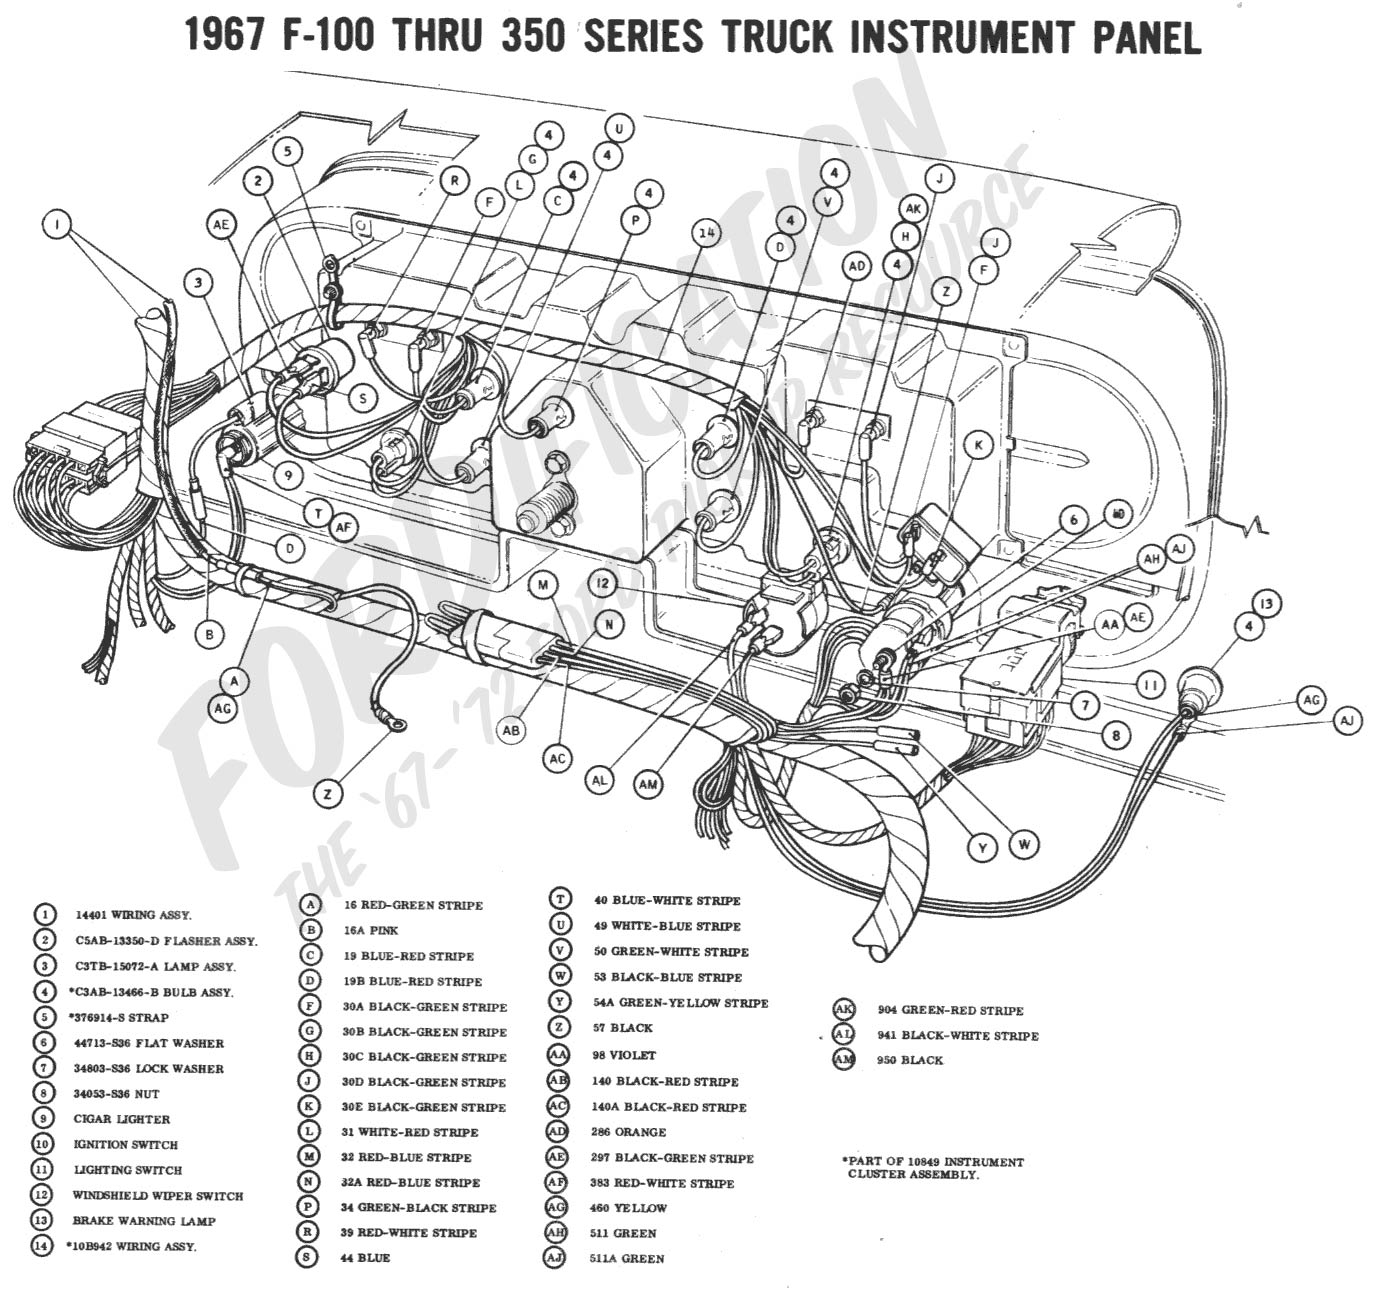 1966 ford f 250 wiring diagram ford truck technical drawings and schematics section h wiring 1967 f 100 thru f 350 instrument